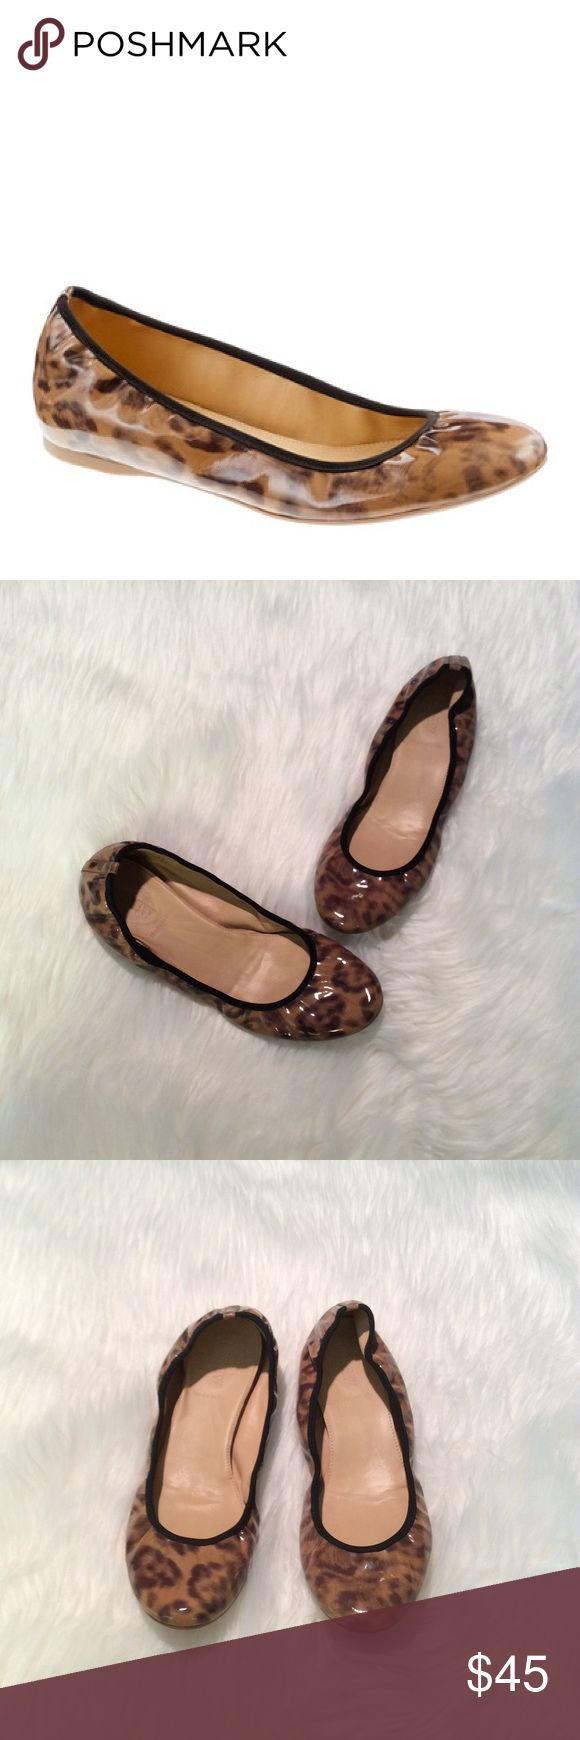 J.Crew Lula Leopard Flats Absolutely gorgeous flats! In great condition. Lula leopard ballet flats J. Crew Shoes Flats & Loafers